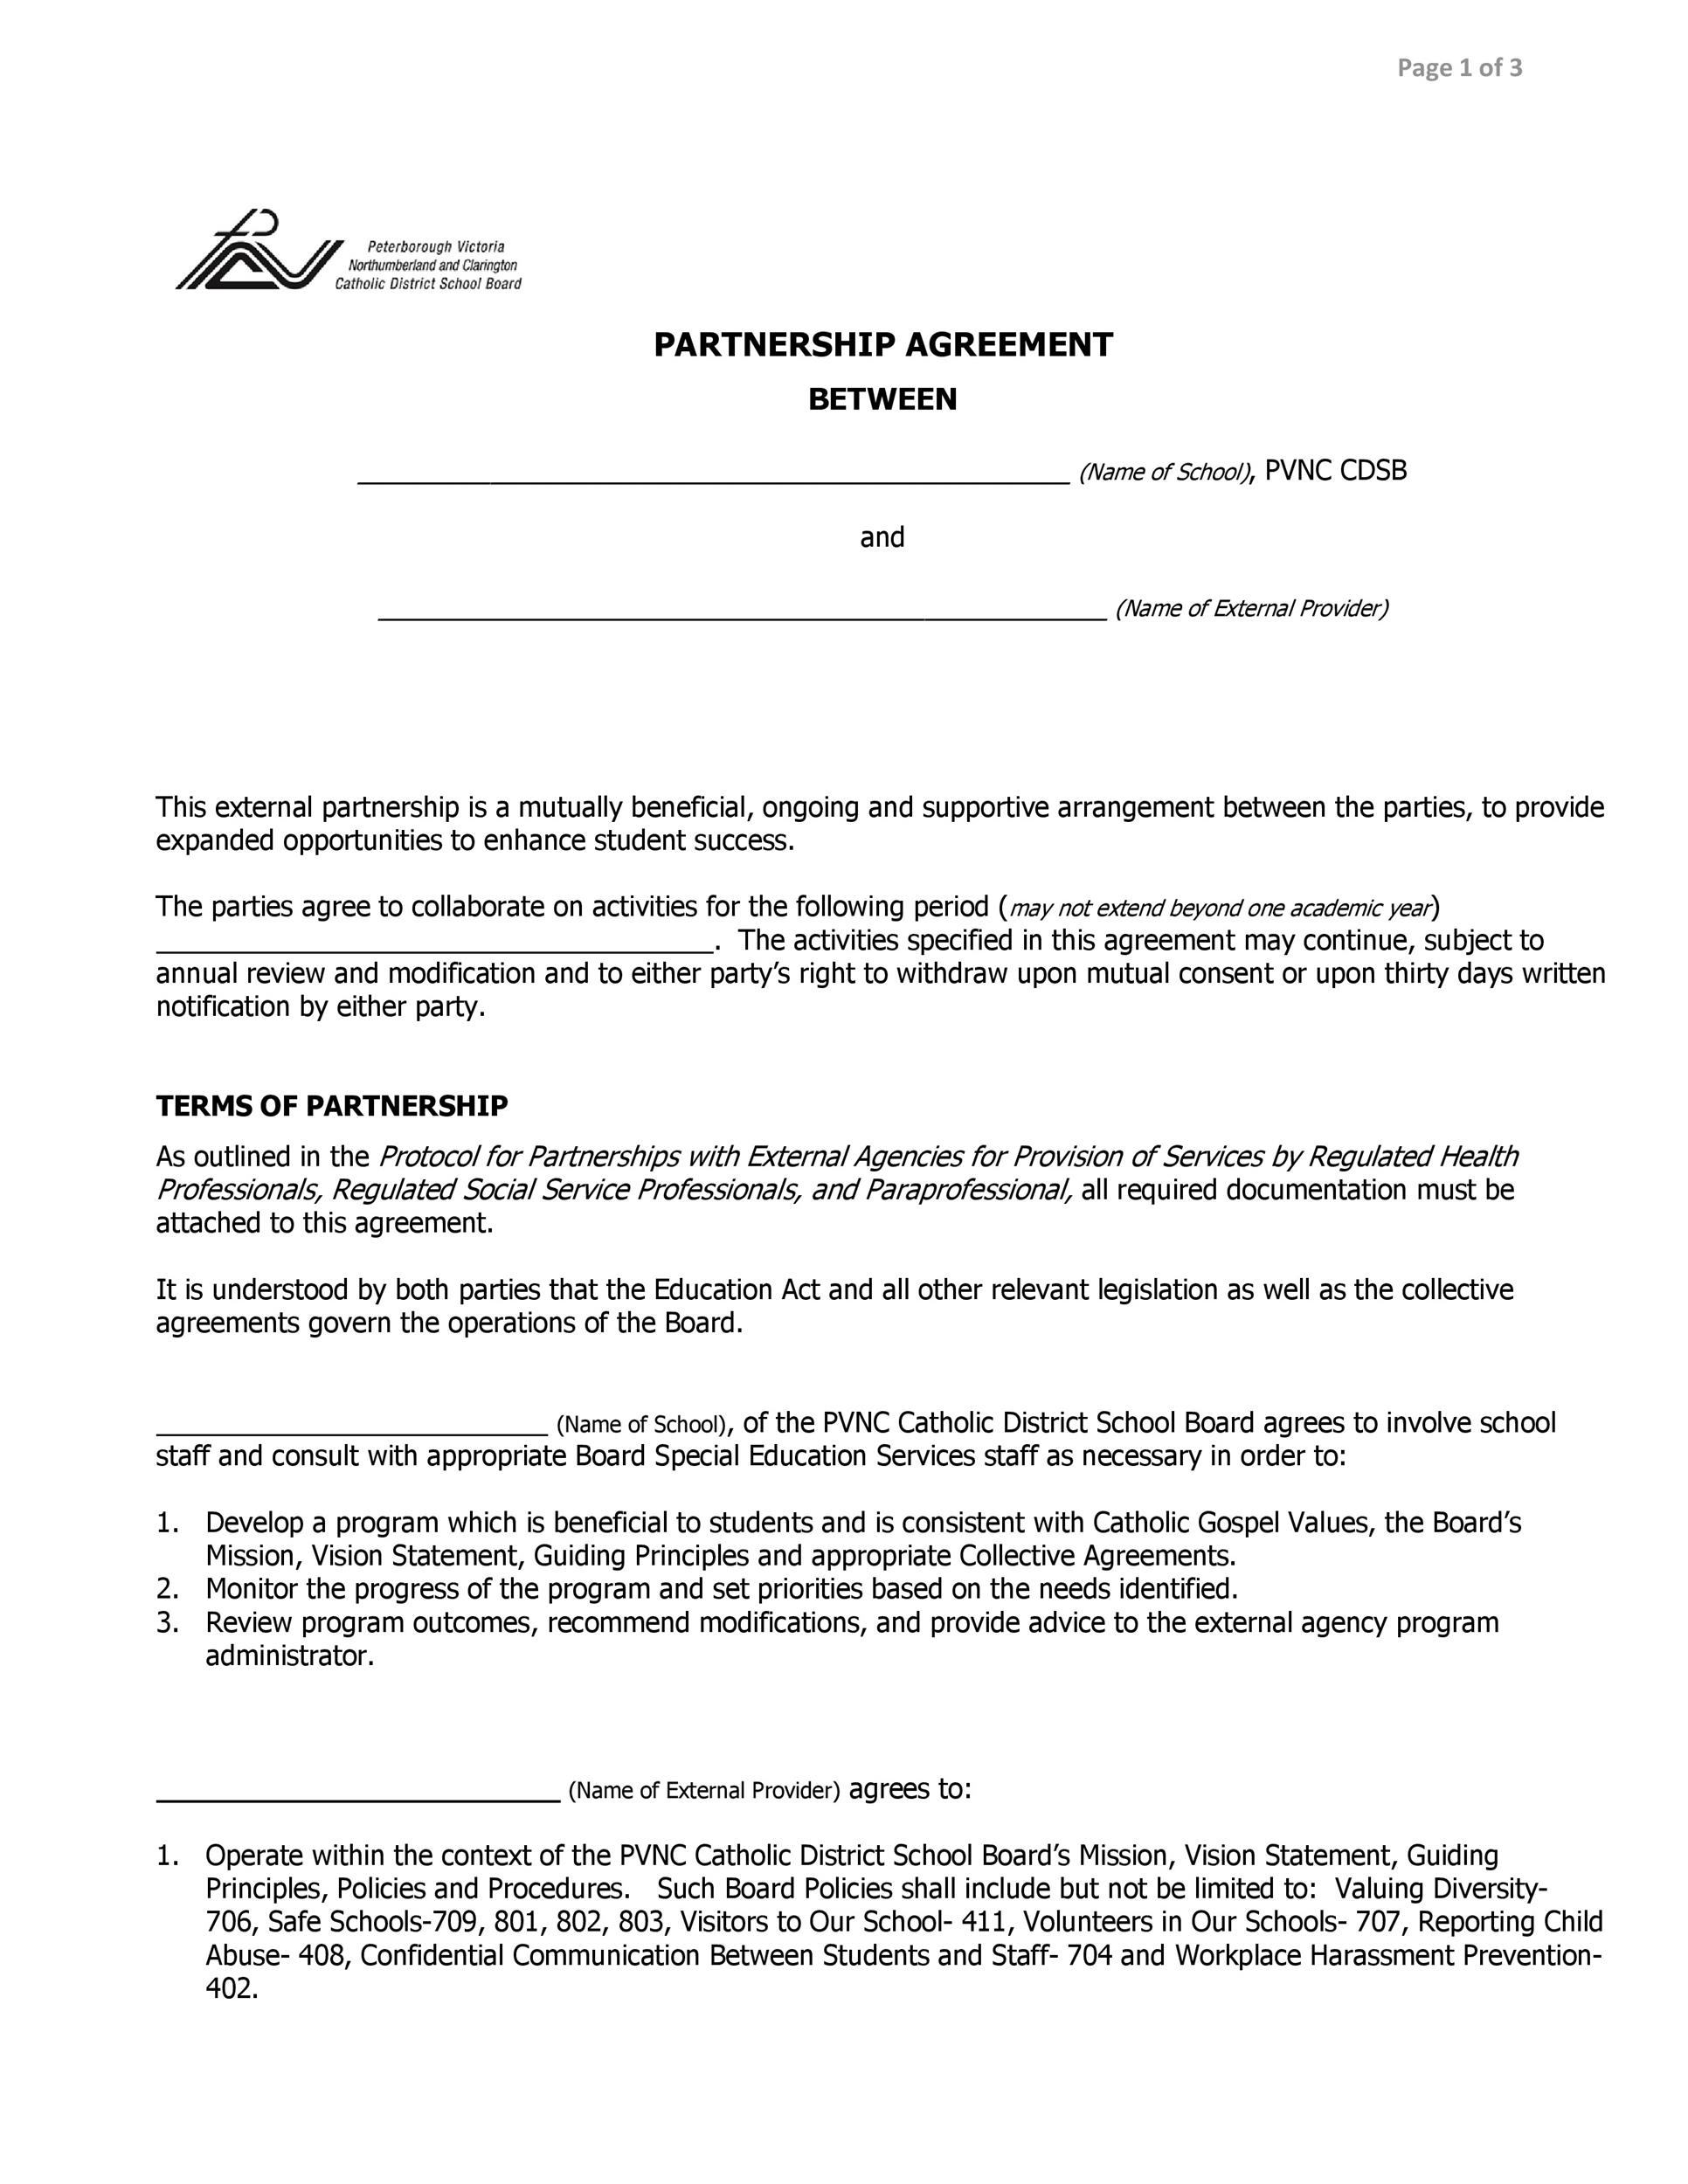 40 FREE Partnership Agreement Templates Business General – Business Partner Agreement